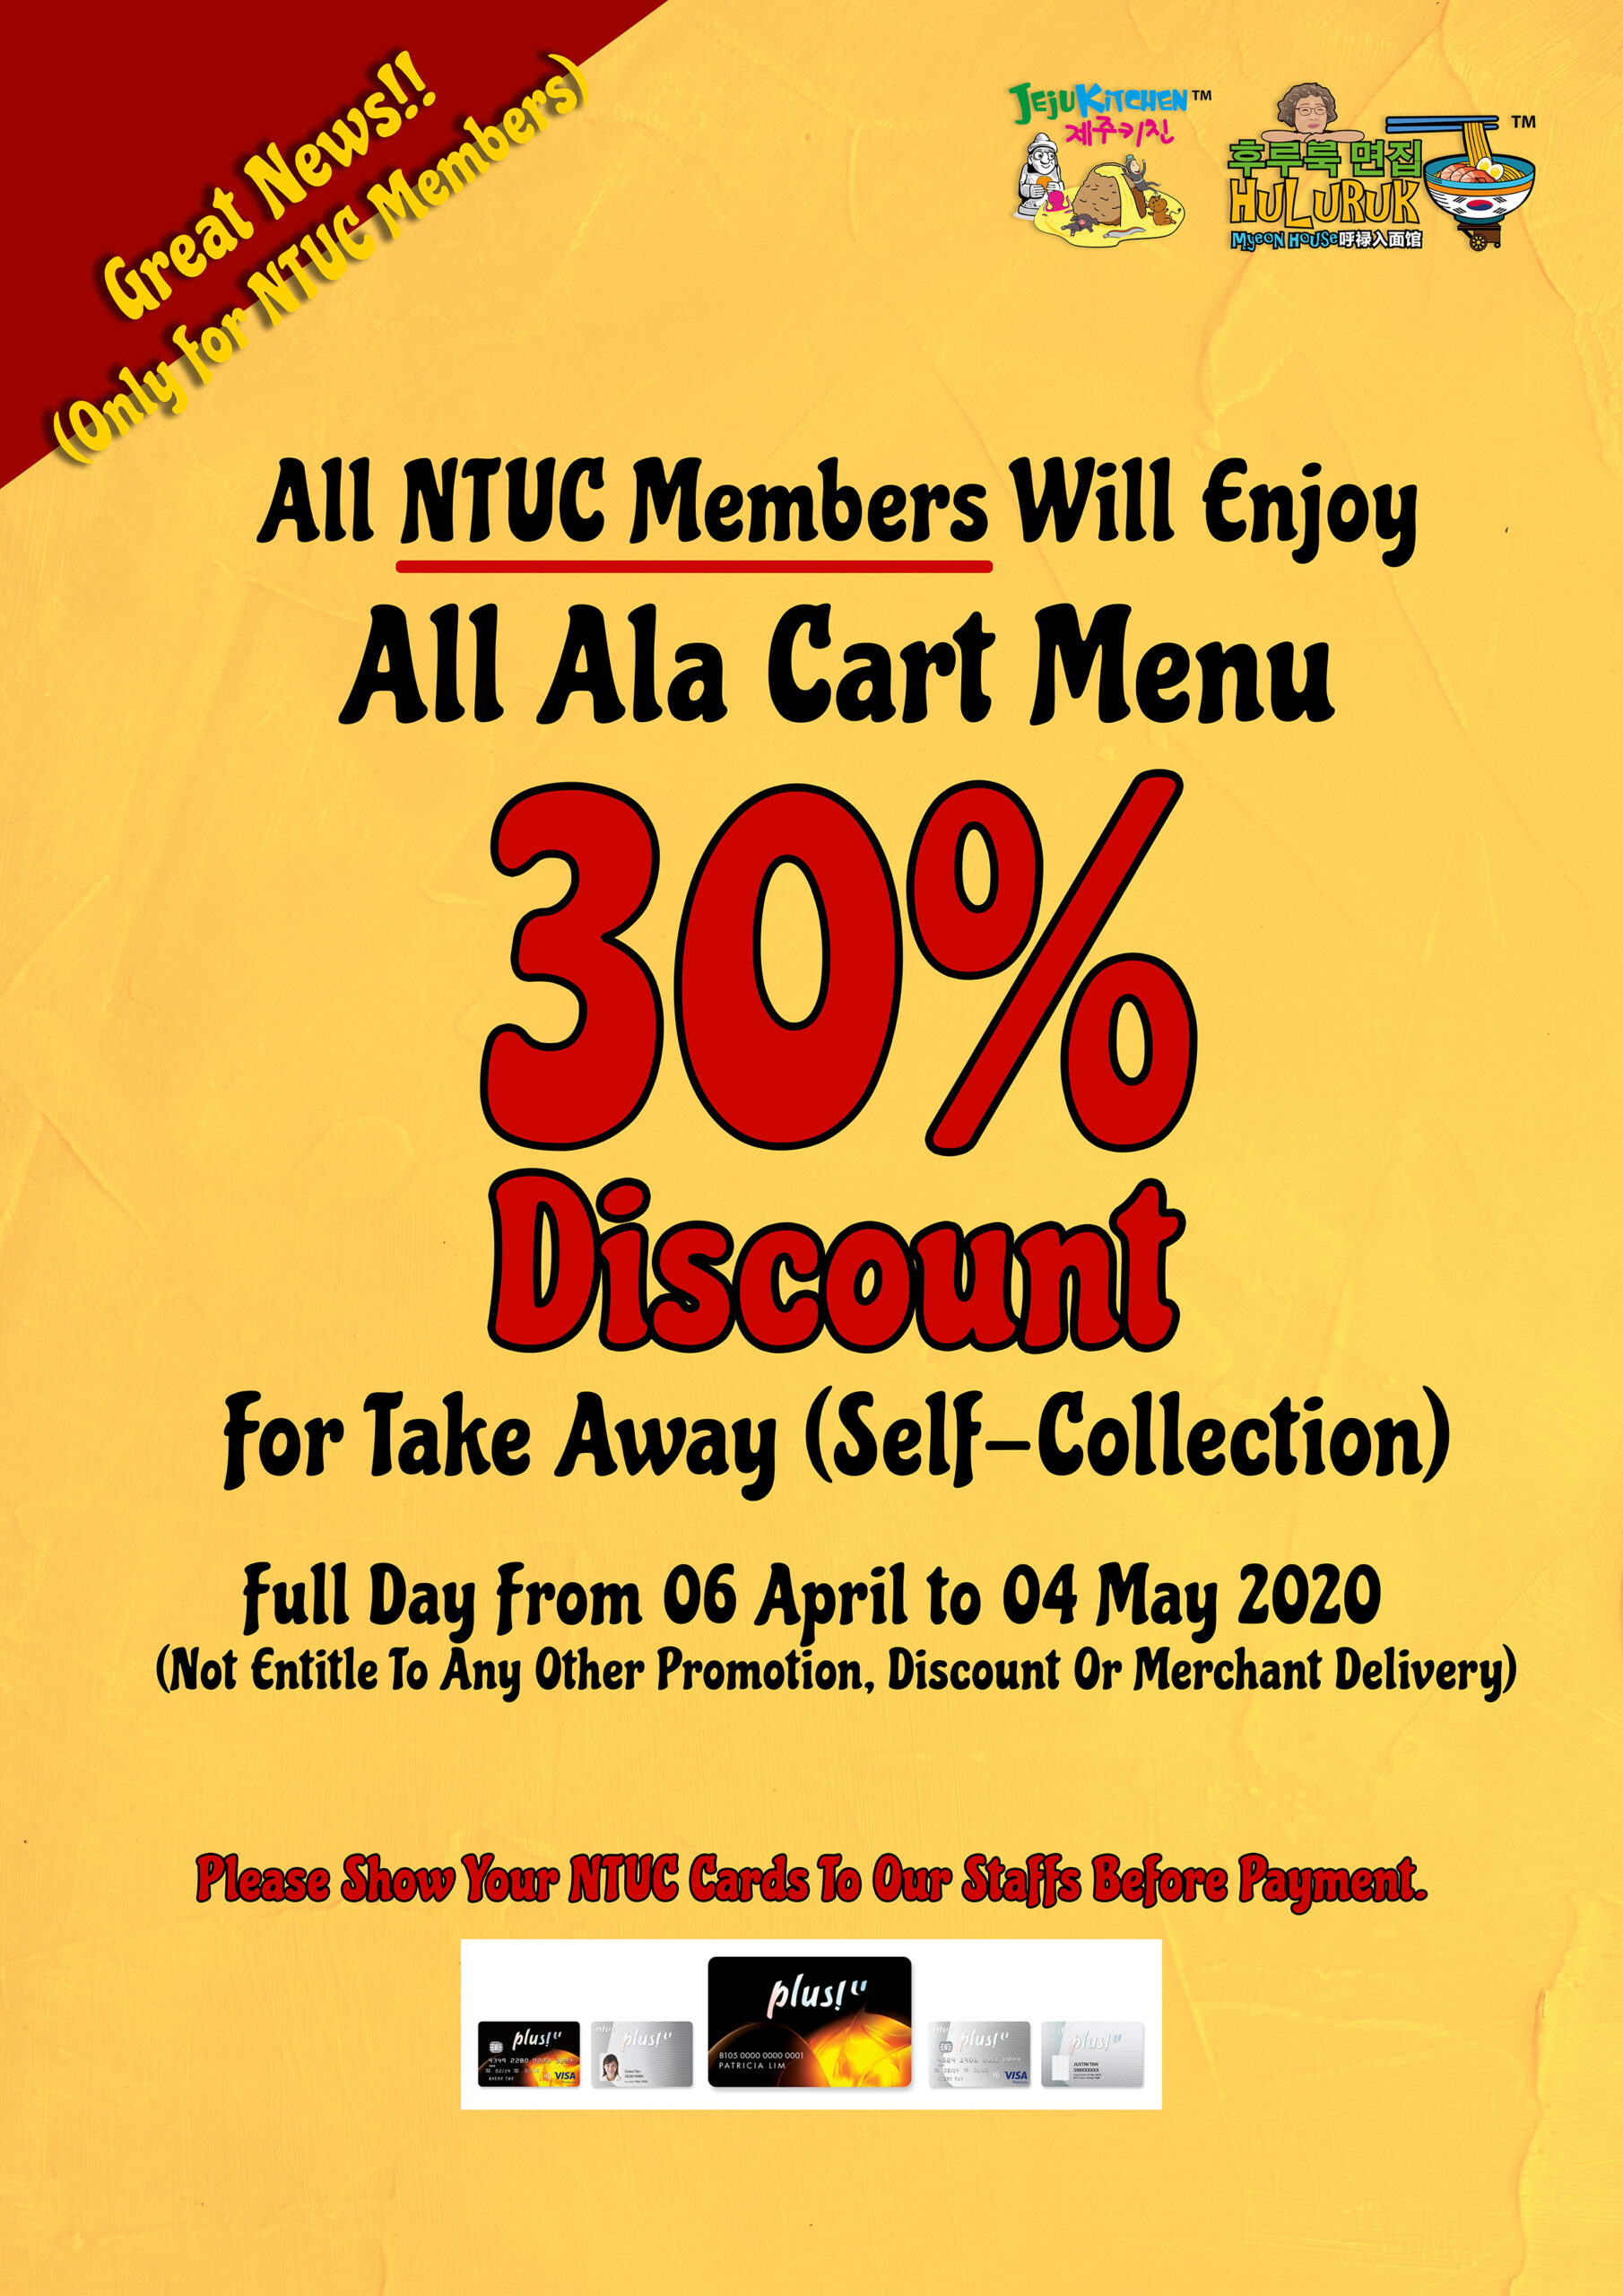 Great News for All NTUC Members‼️